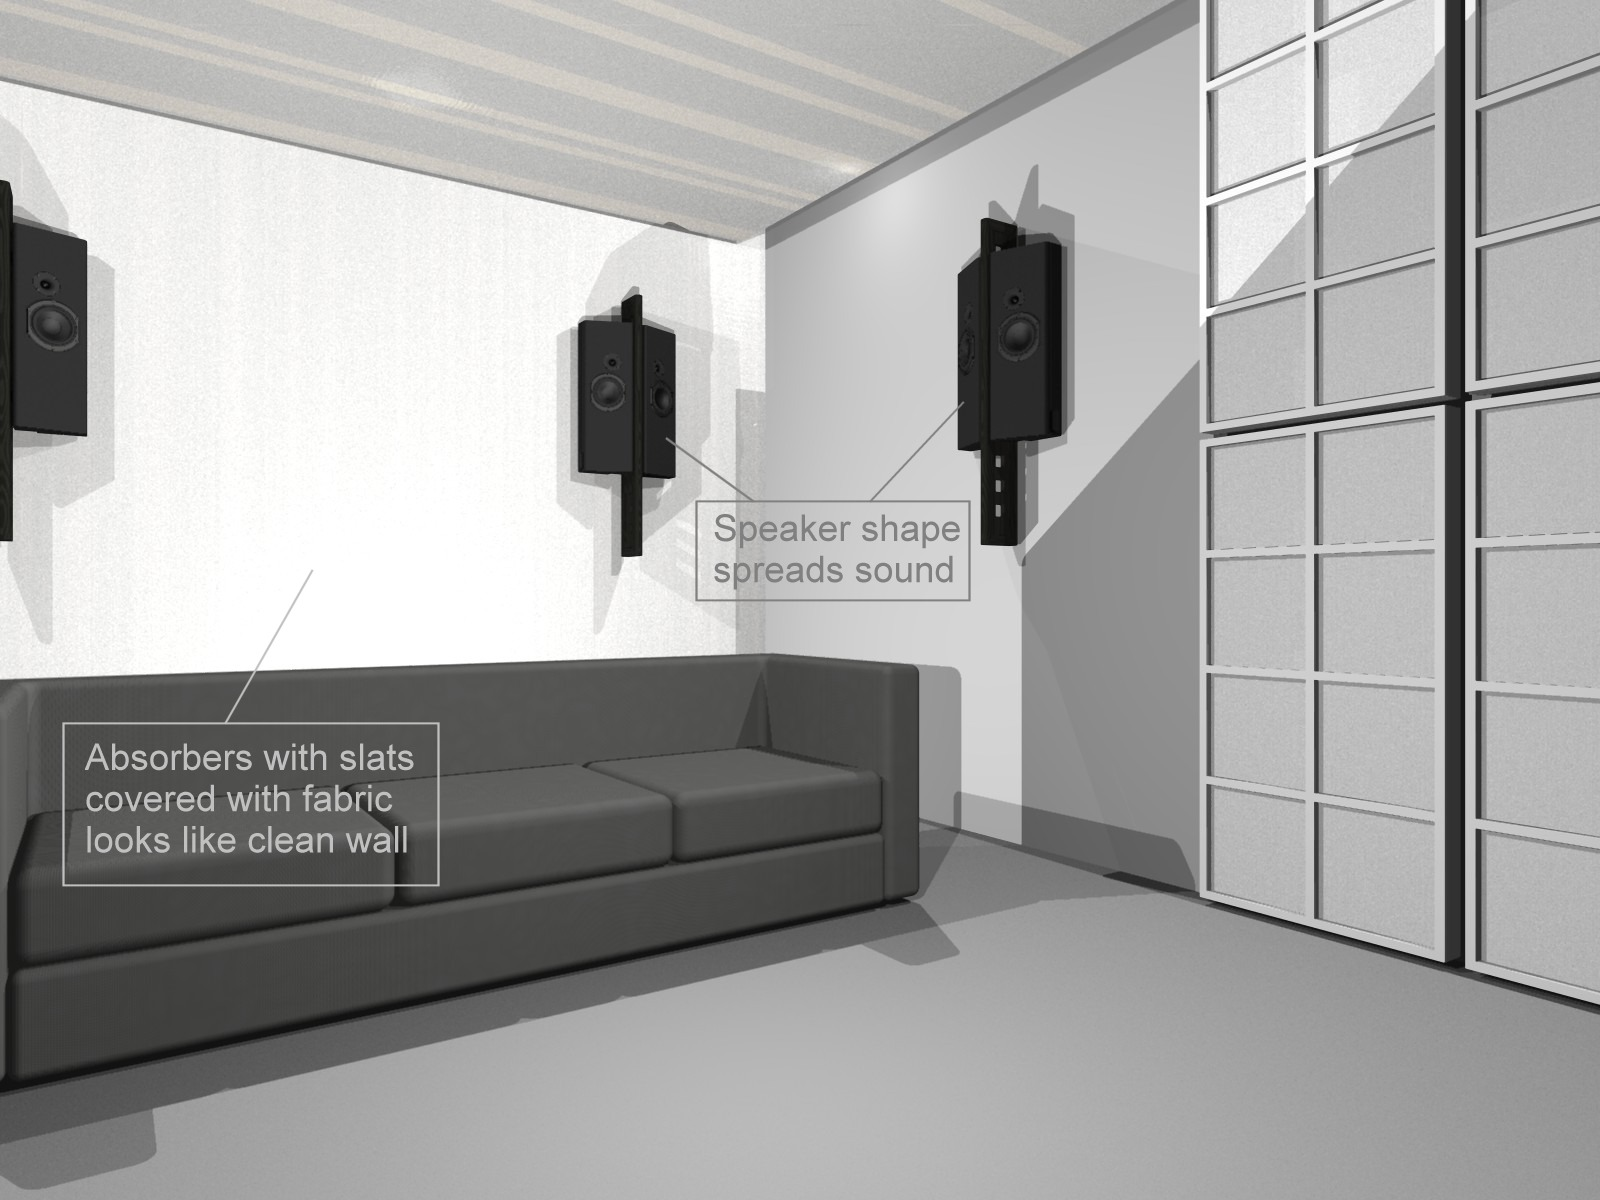 How to set up a home-theater sound system